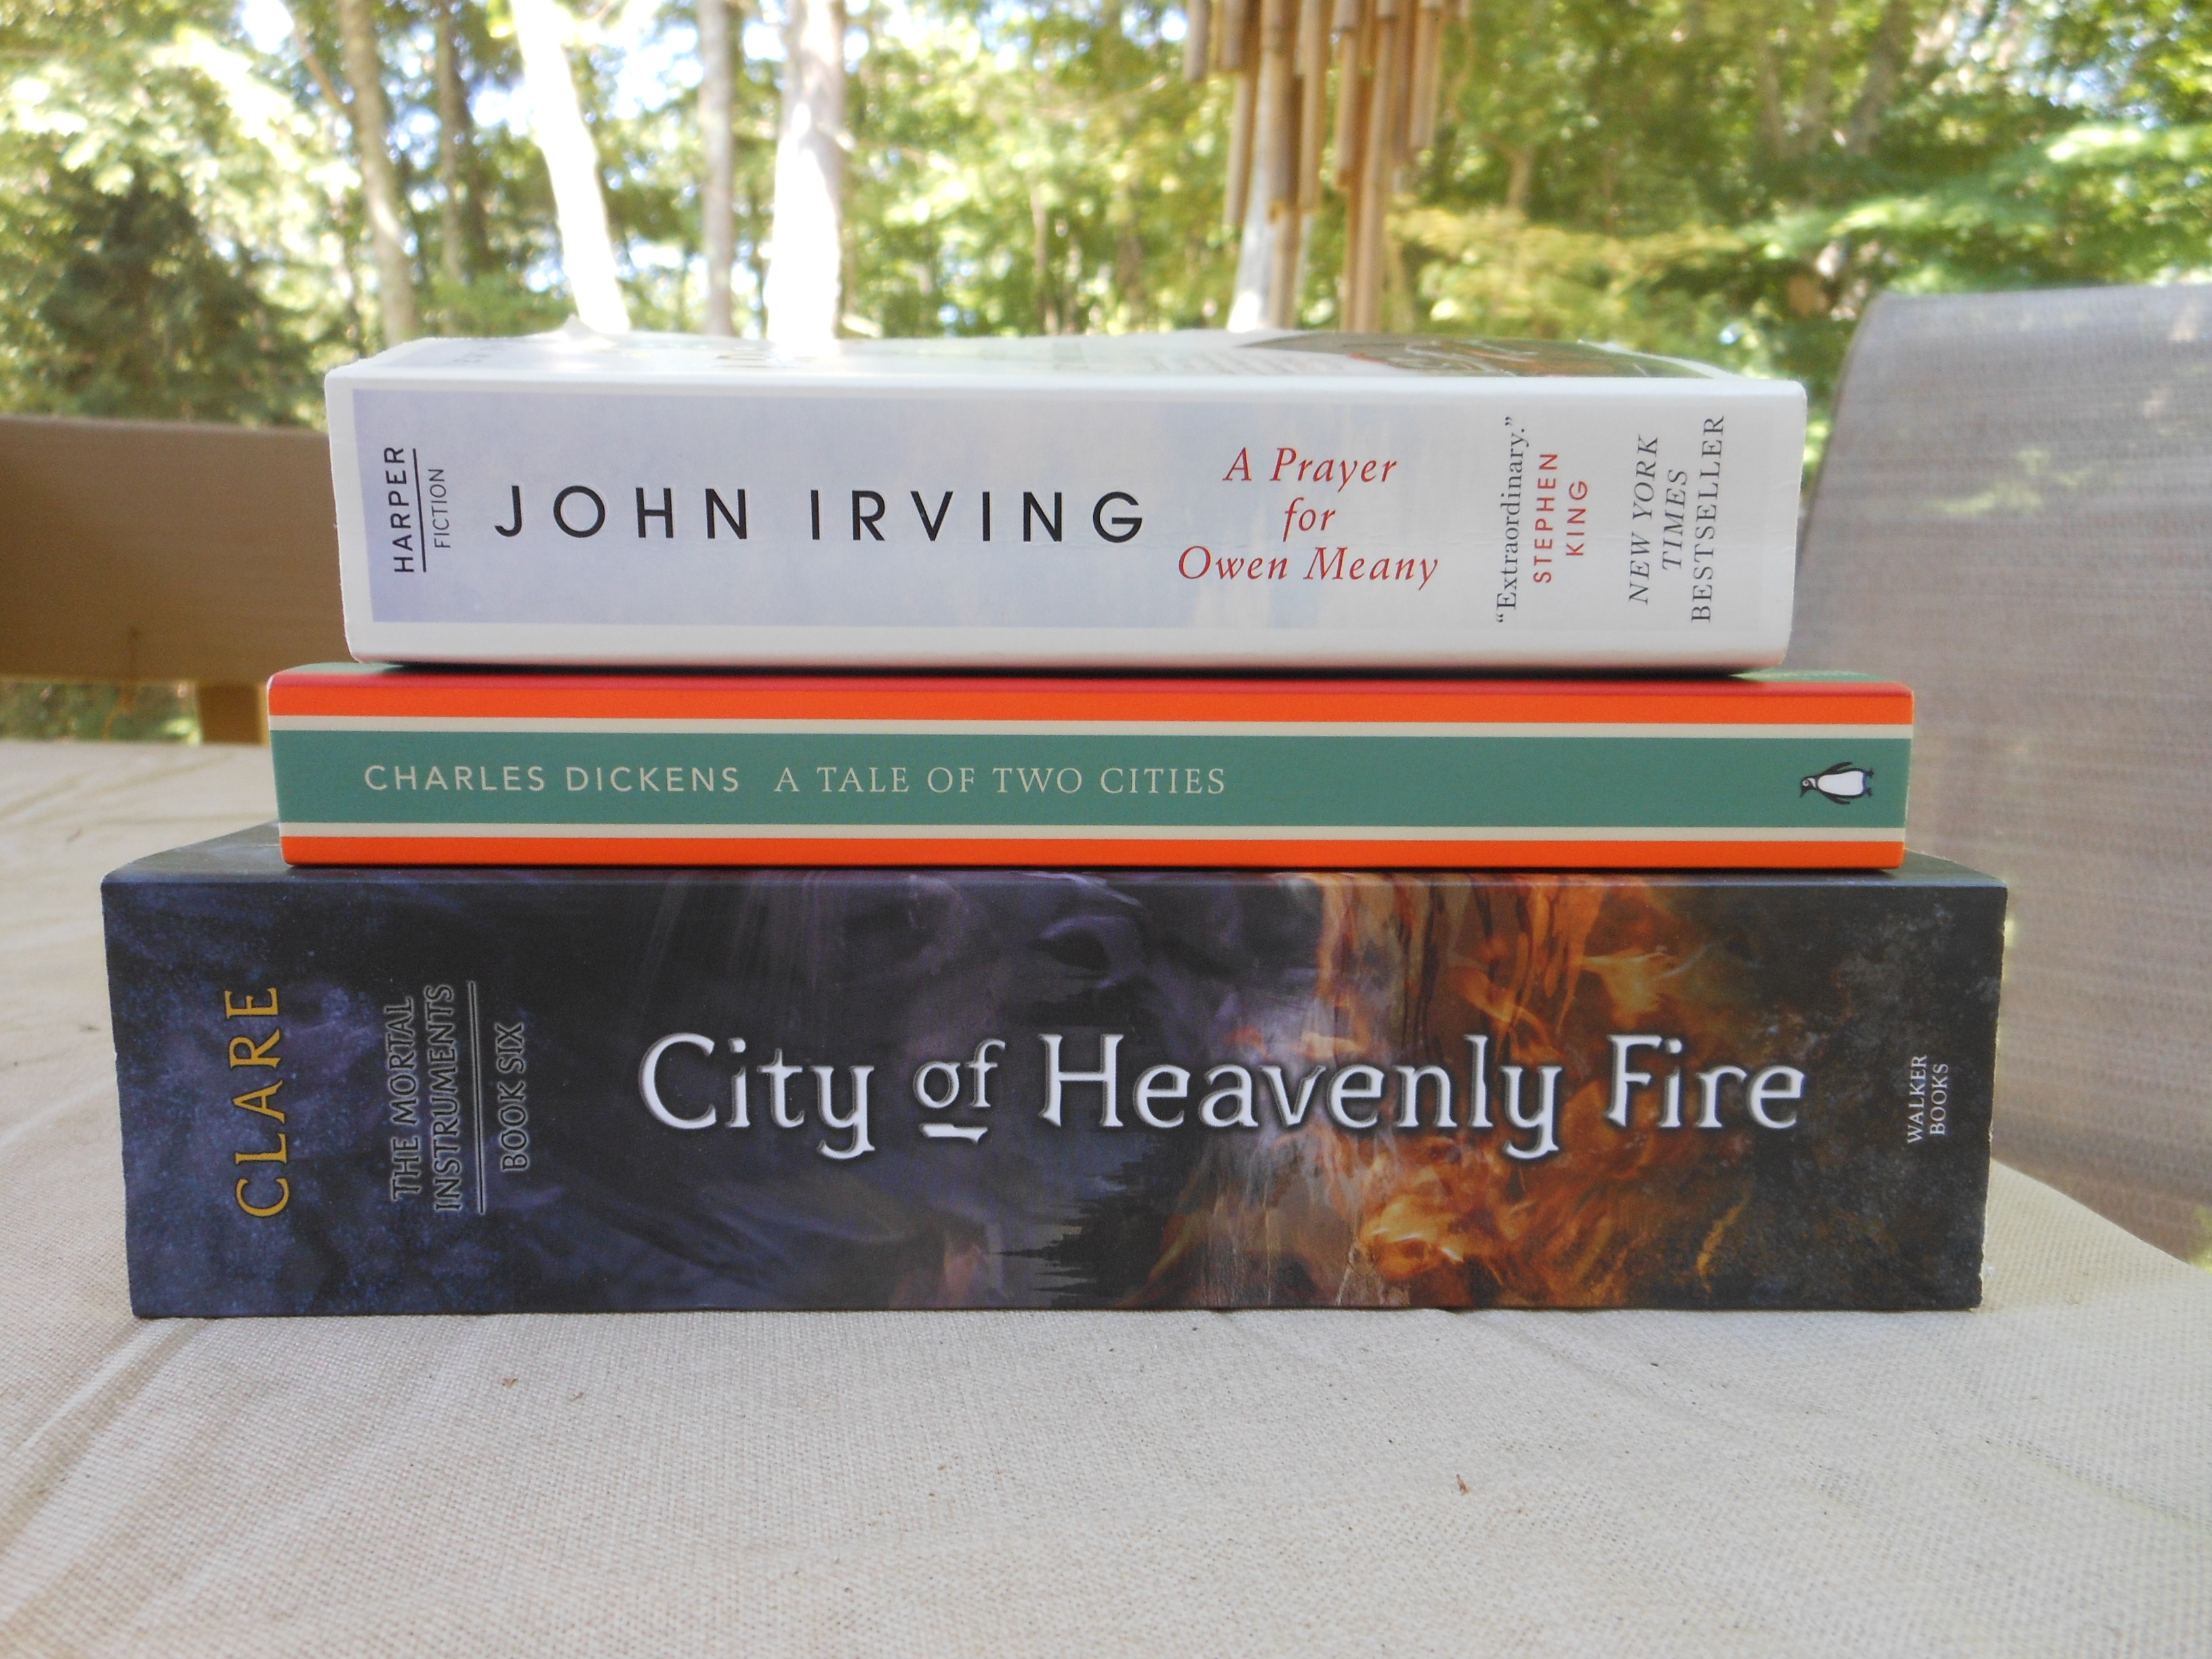 more books nut nerd a prayer for owen meany by john irving this is one of the books i ve been assigned to over the summer i ve actually already finished it